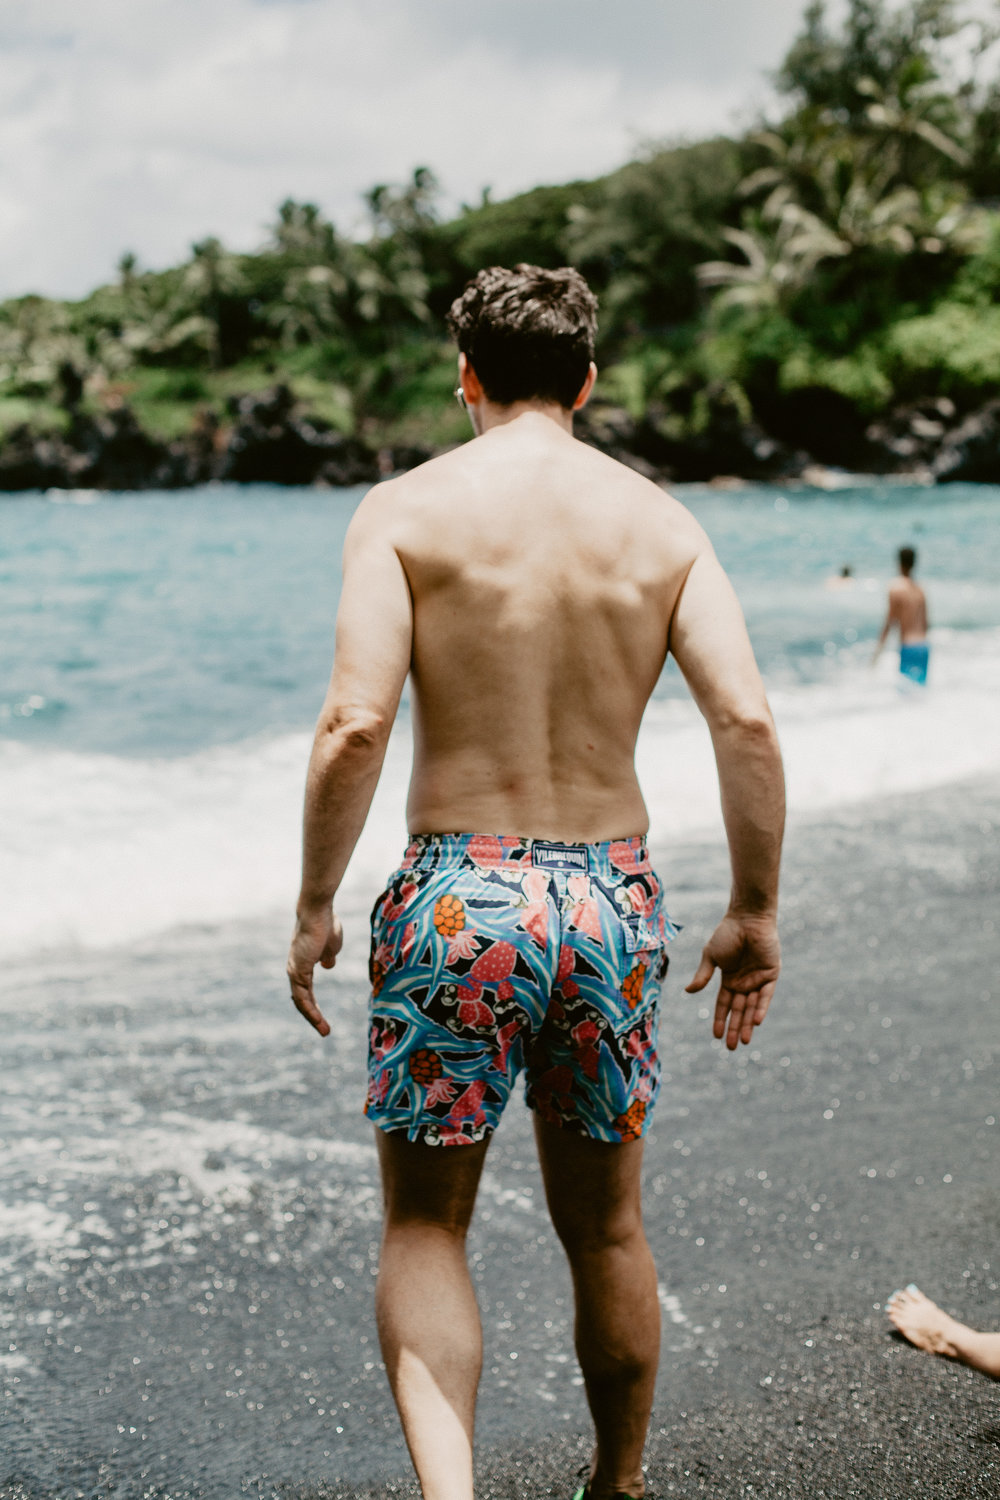 Top 5 Instagram Photos Road to Hana Black Sand Beach